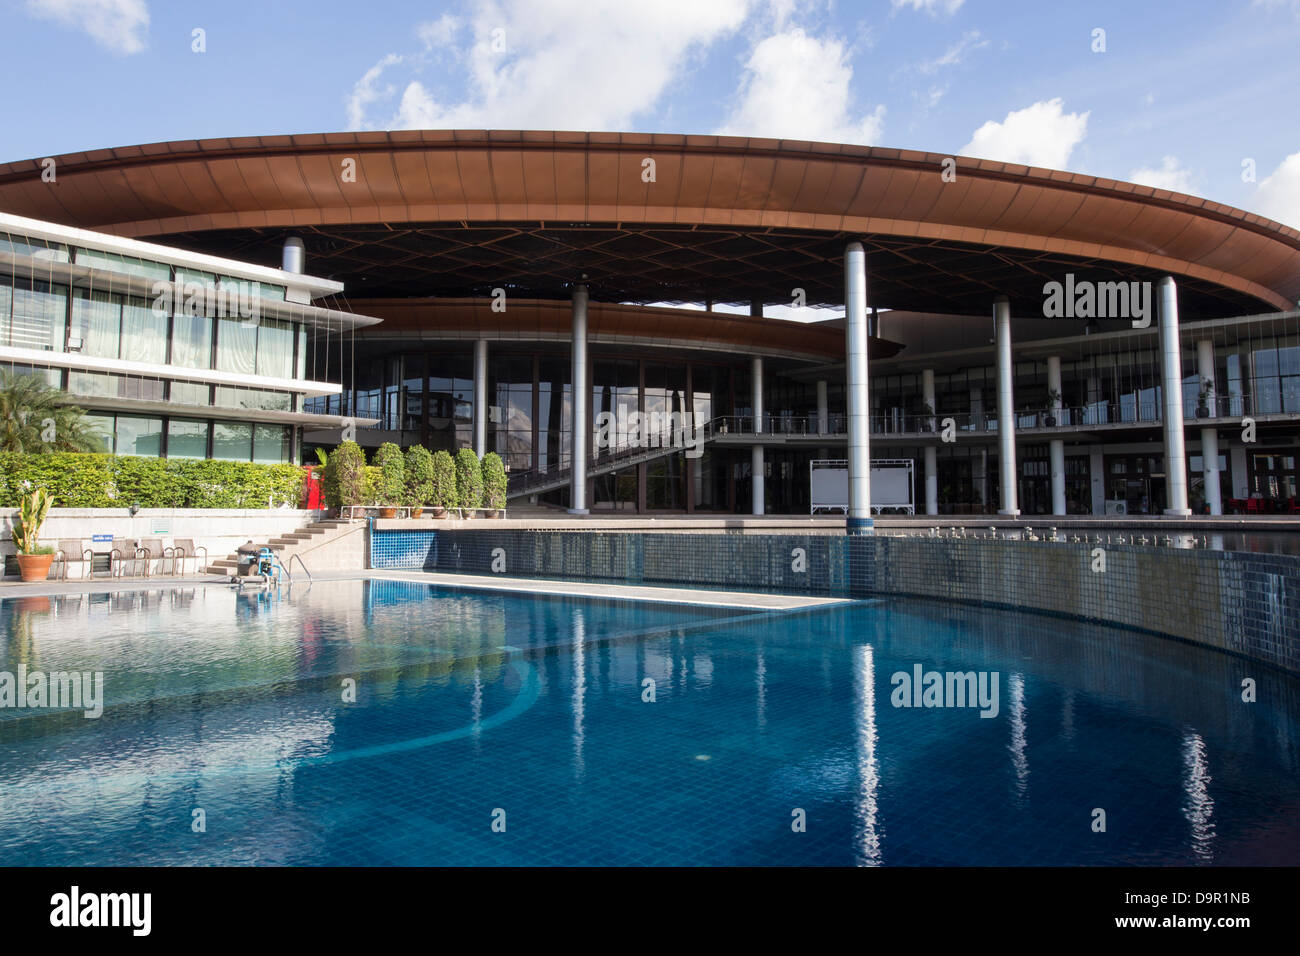 The Army Club includes a large swimming pool, exercise rooms, professional trainers, badmiten and volleyball courts. - Stock Image